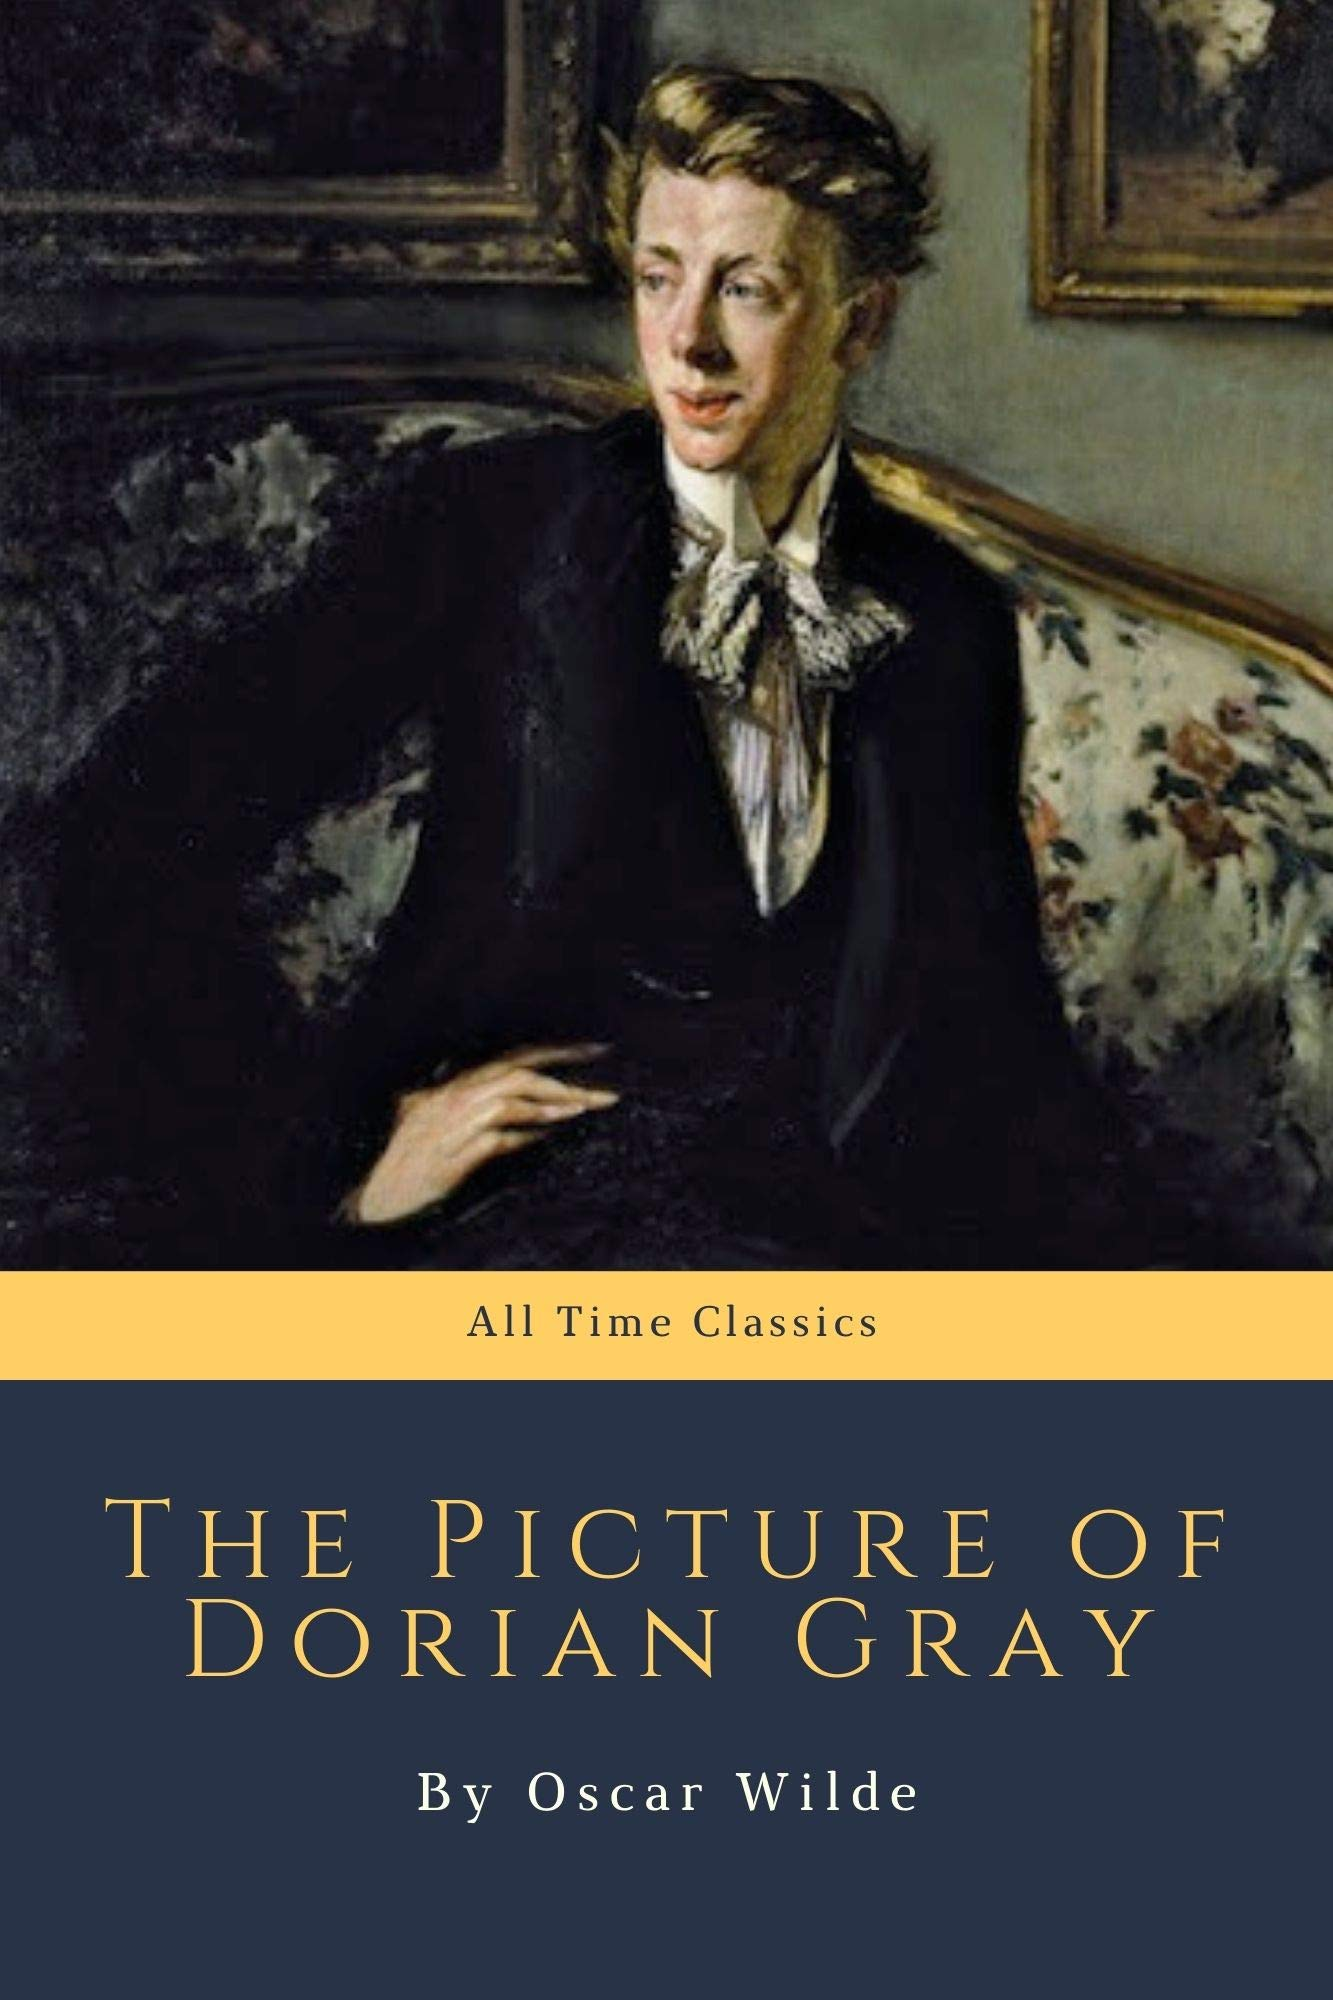 The Picture of Dorian Gray by Oscar Wilde (All Time Classics Book 10)